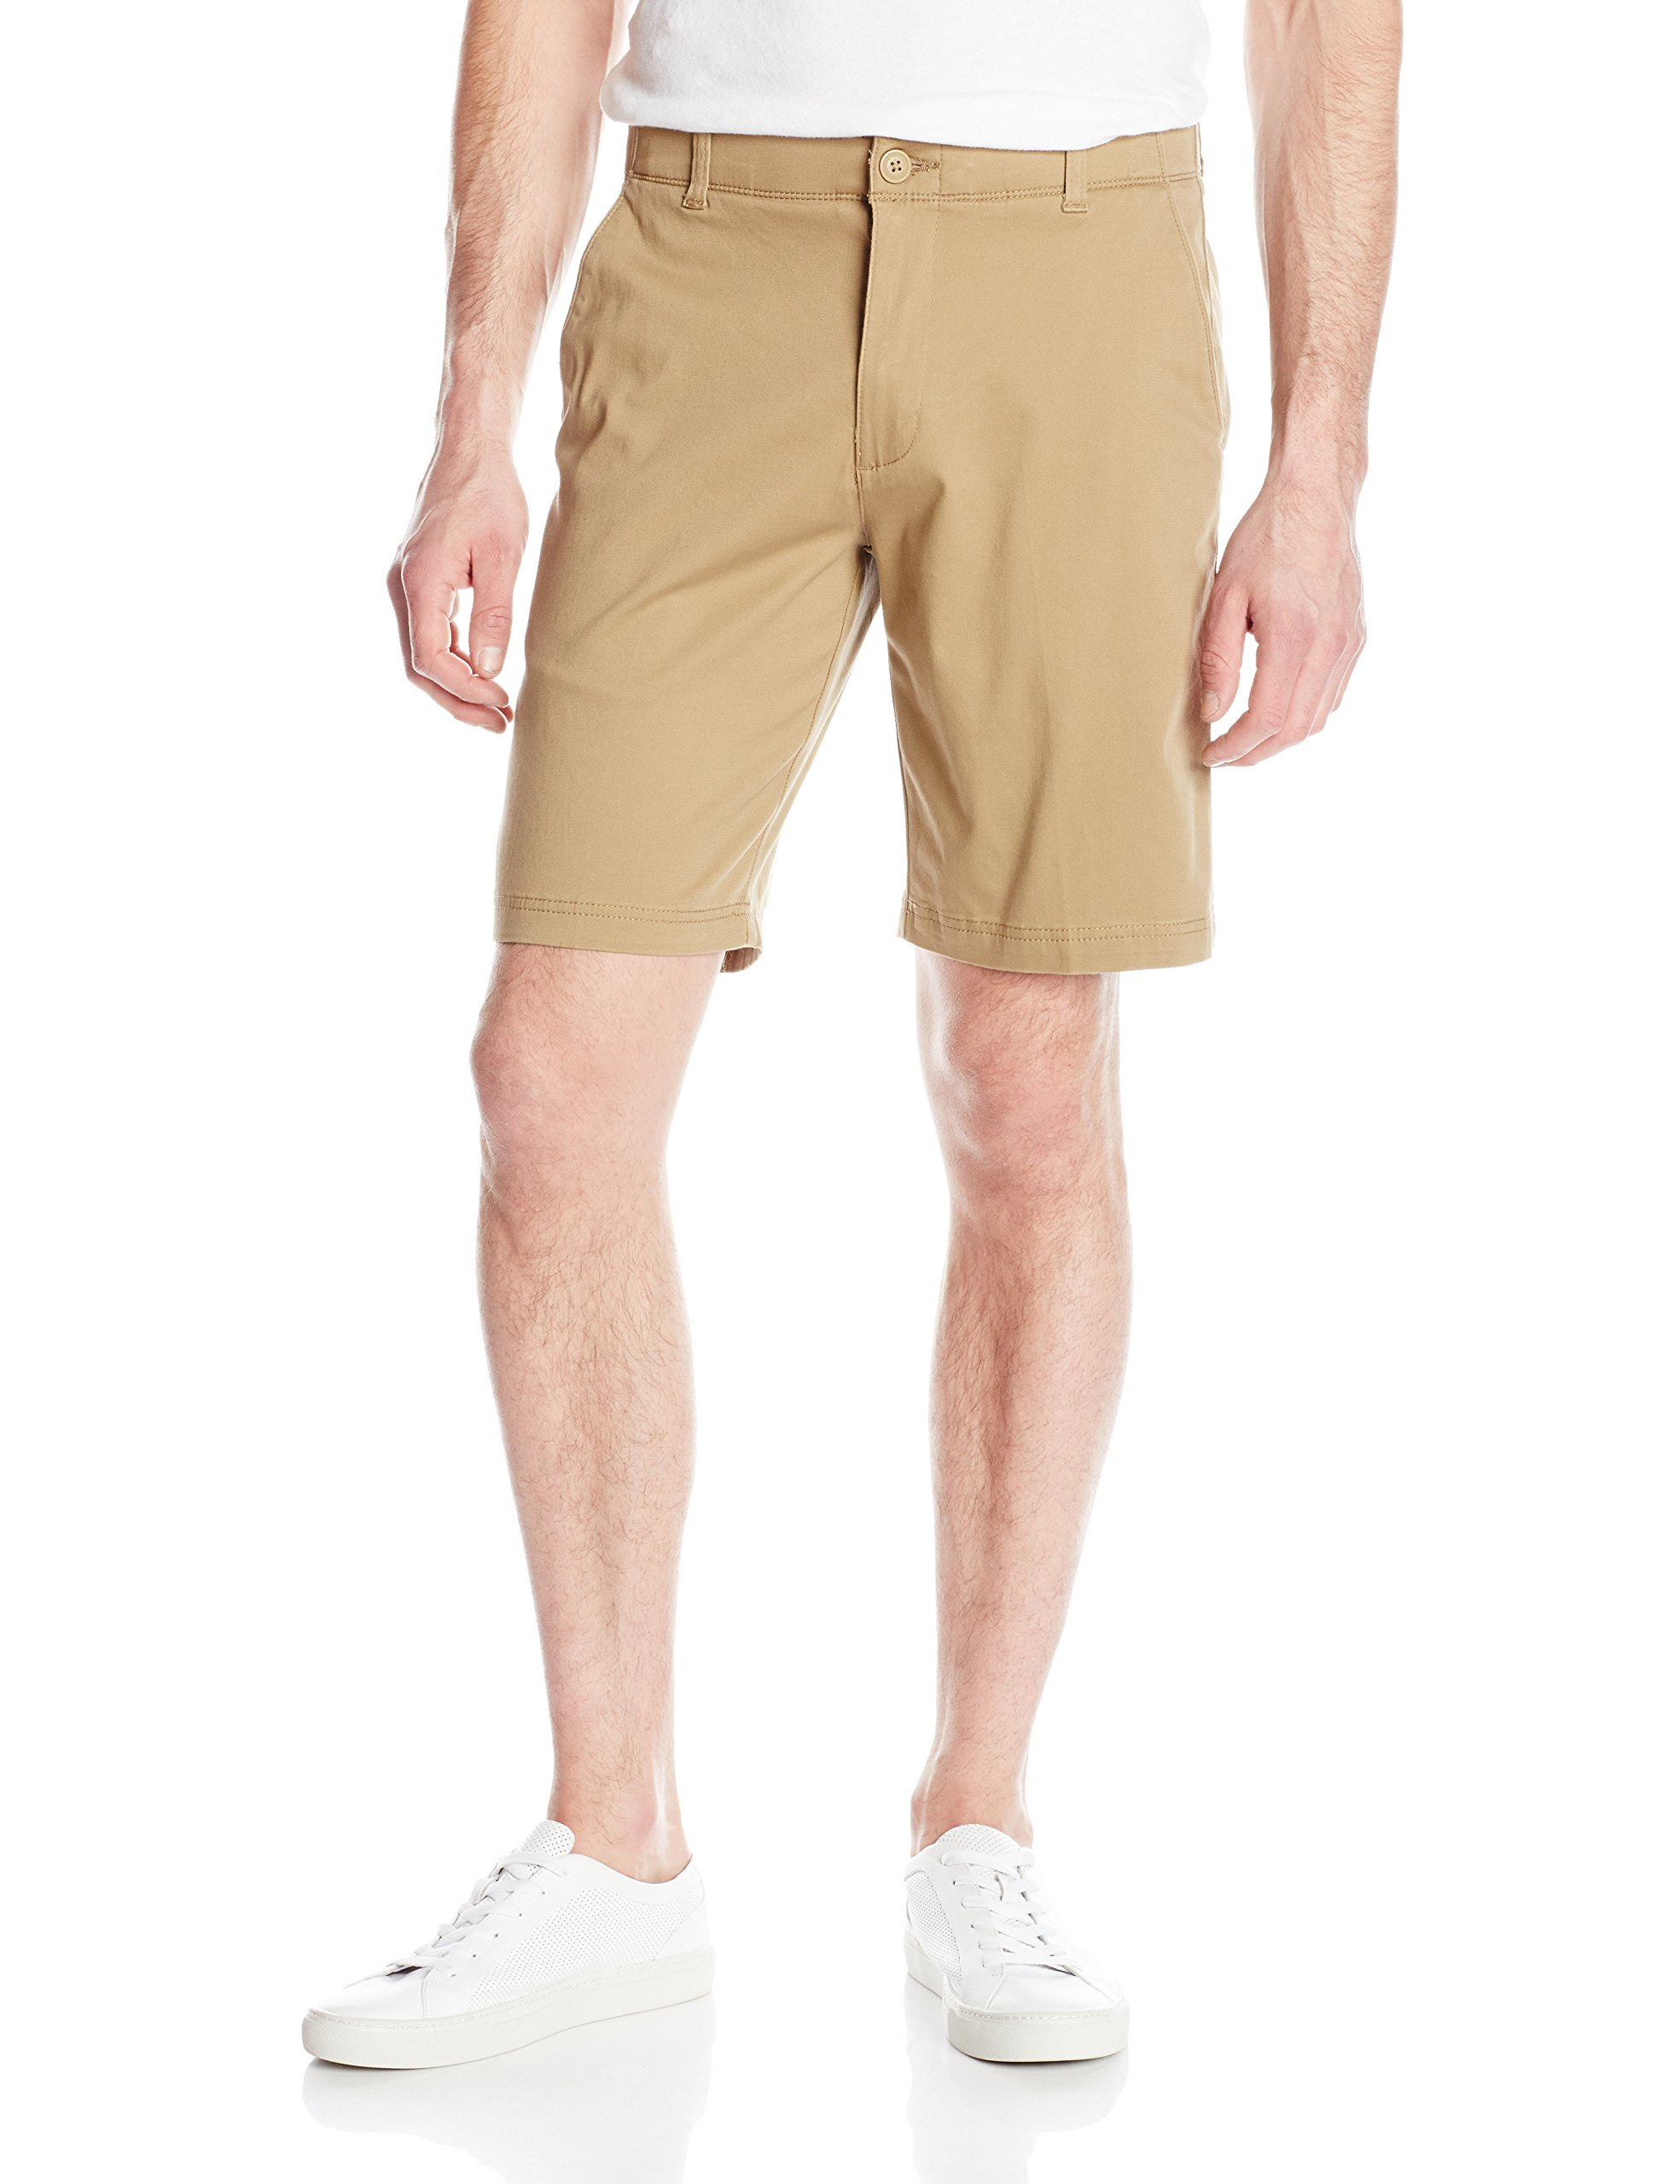 LEE Men's Performance Series Extreme Comfort Short, Original Khaki, 32